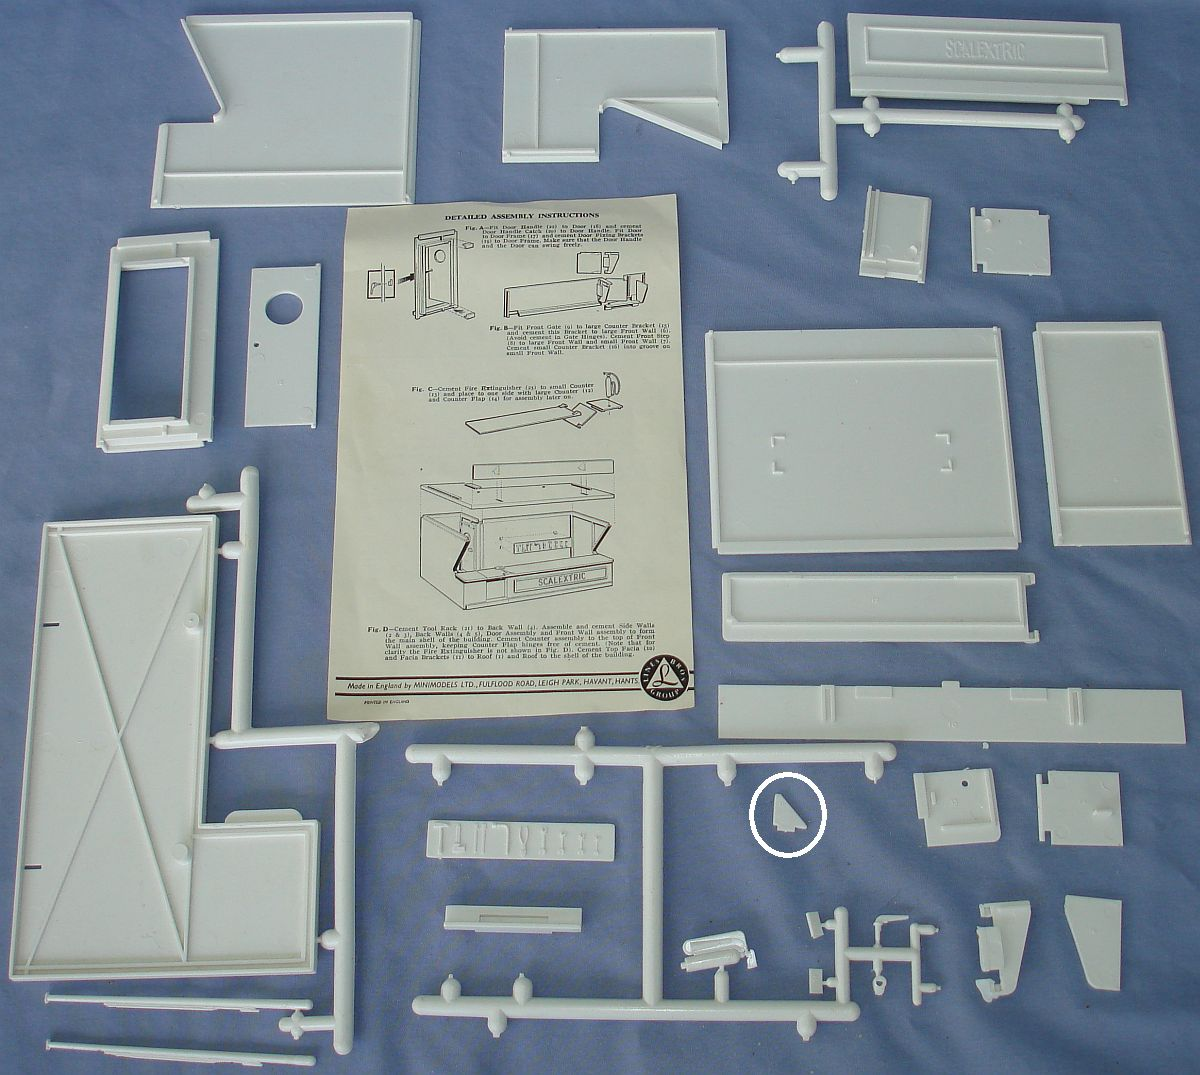 Scalextric Triang 1:32 Scale Slot Car Racing Pit Building Kit K/701 Contents Instructions